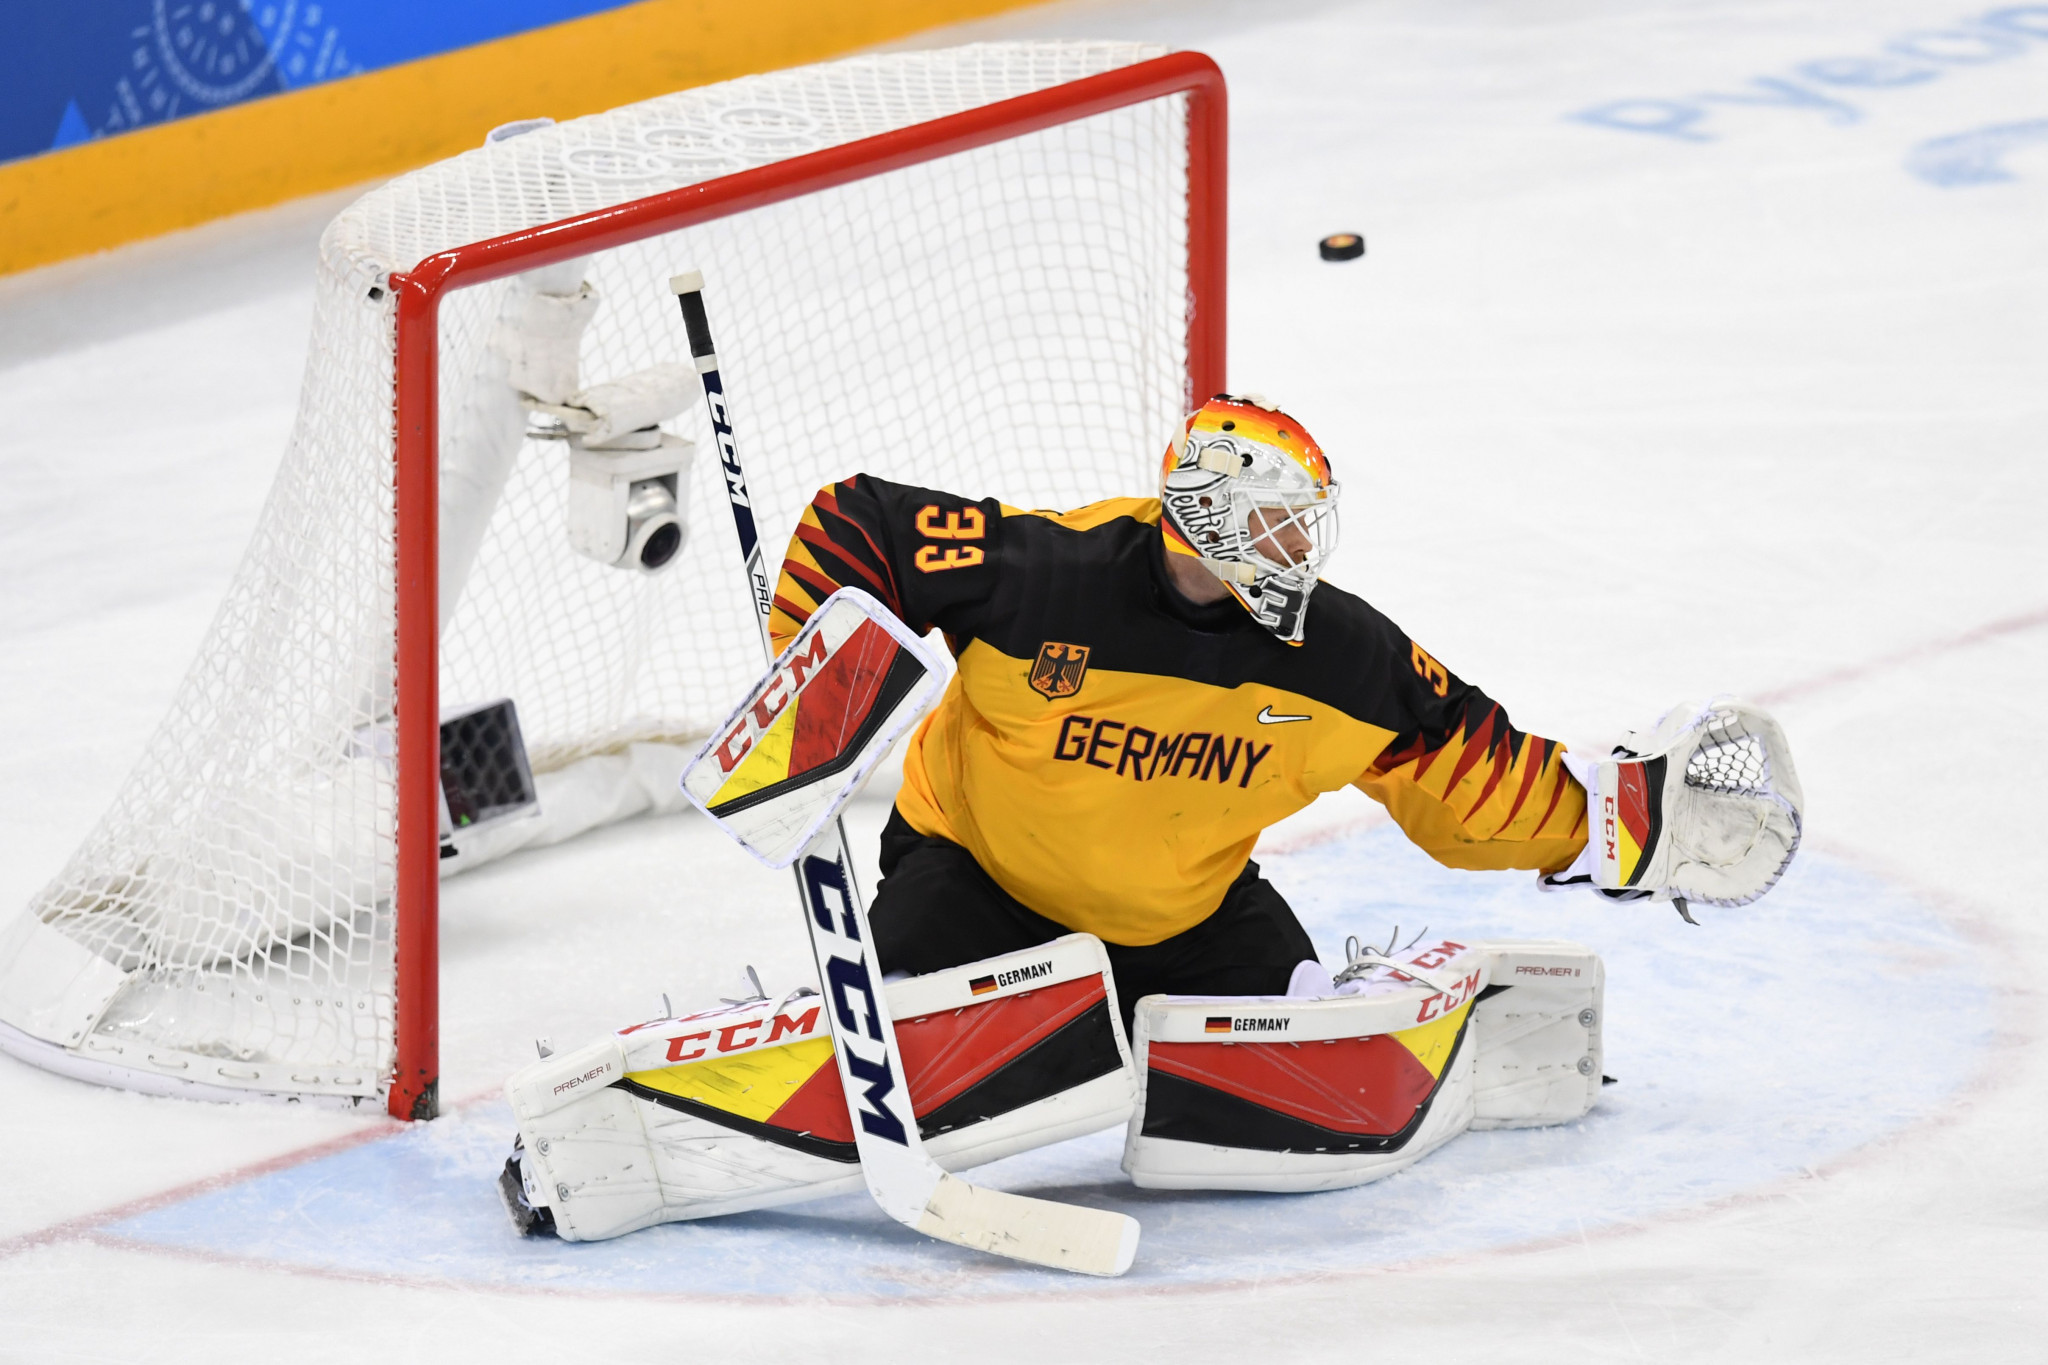 Danny aus den Birken was named as the tournament's best goaltender ©Getty Images